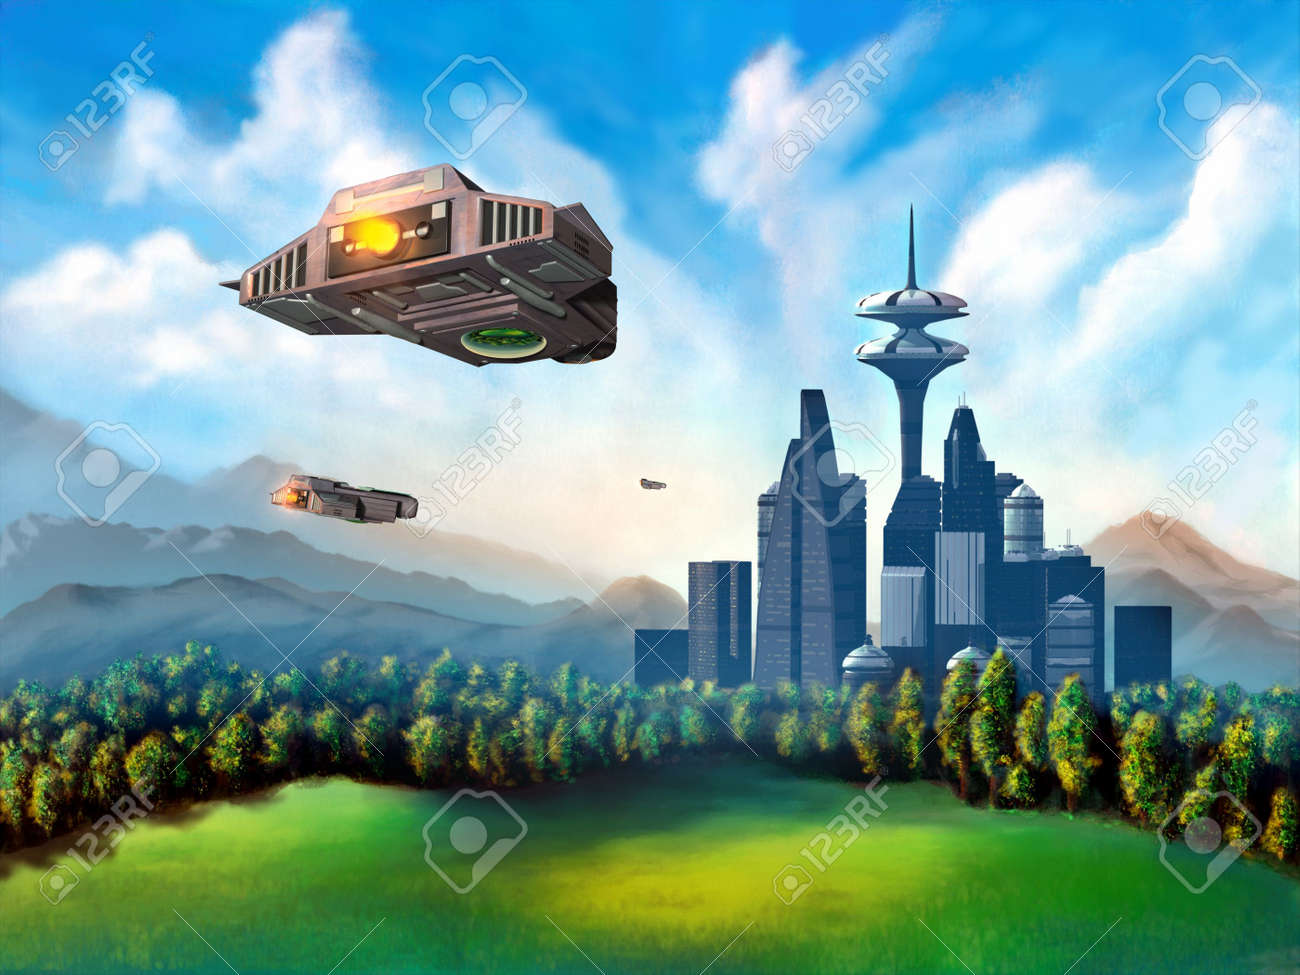 Space ships travelling to a futuristic city. Mixed media illustration. Stock Photo - 3135436